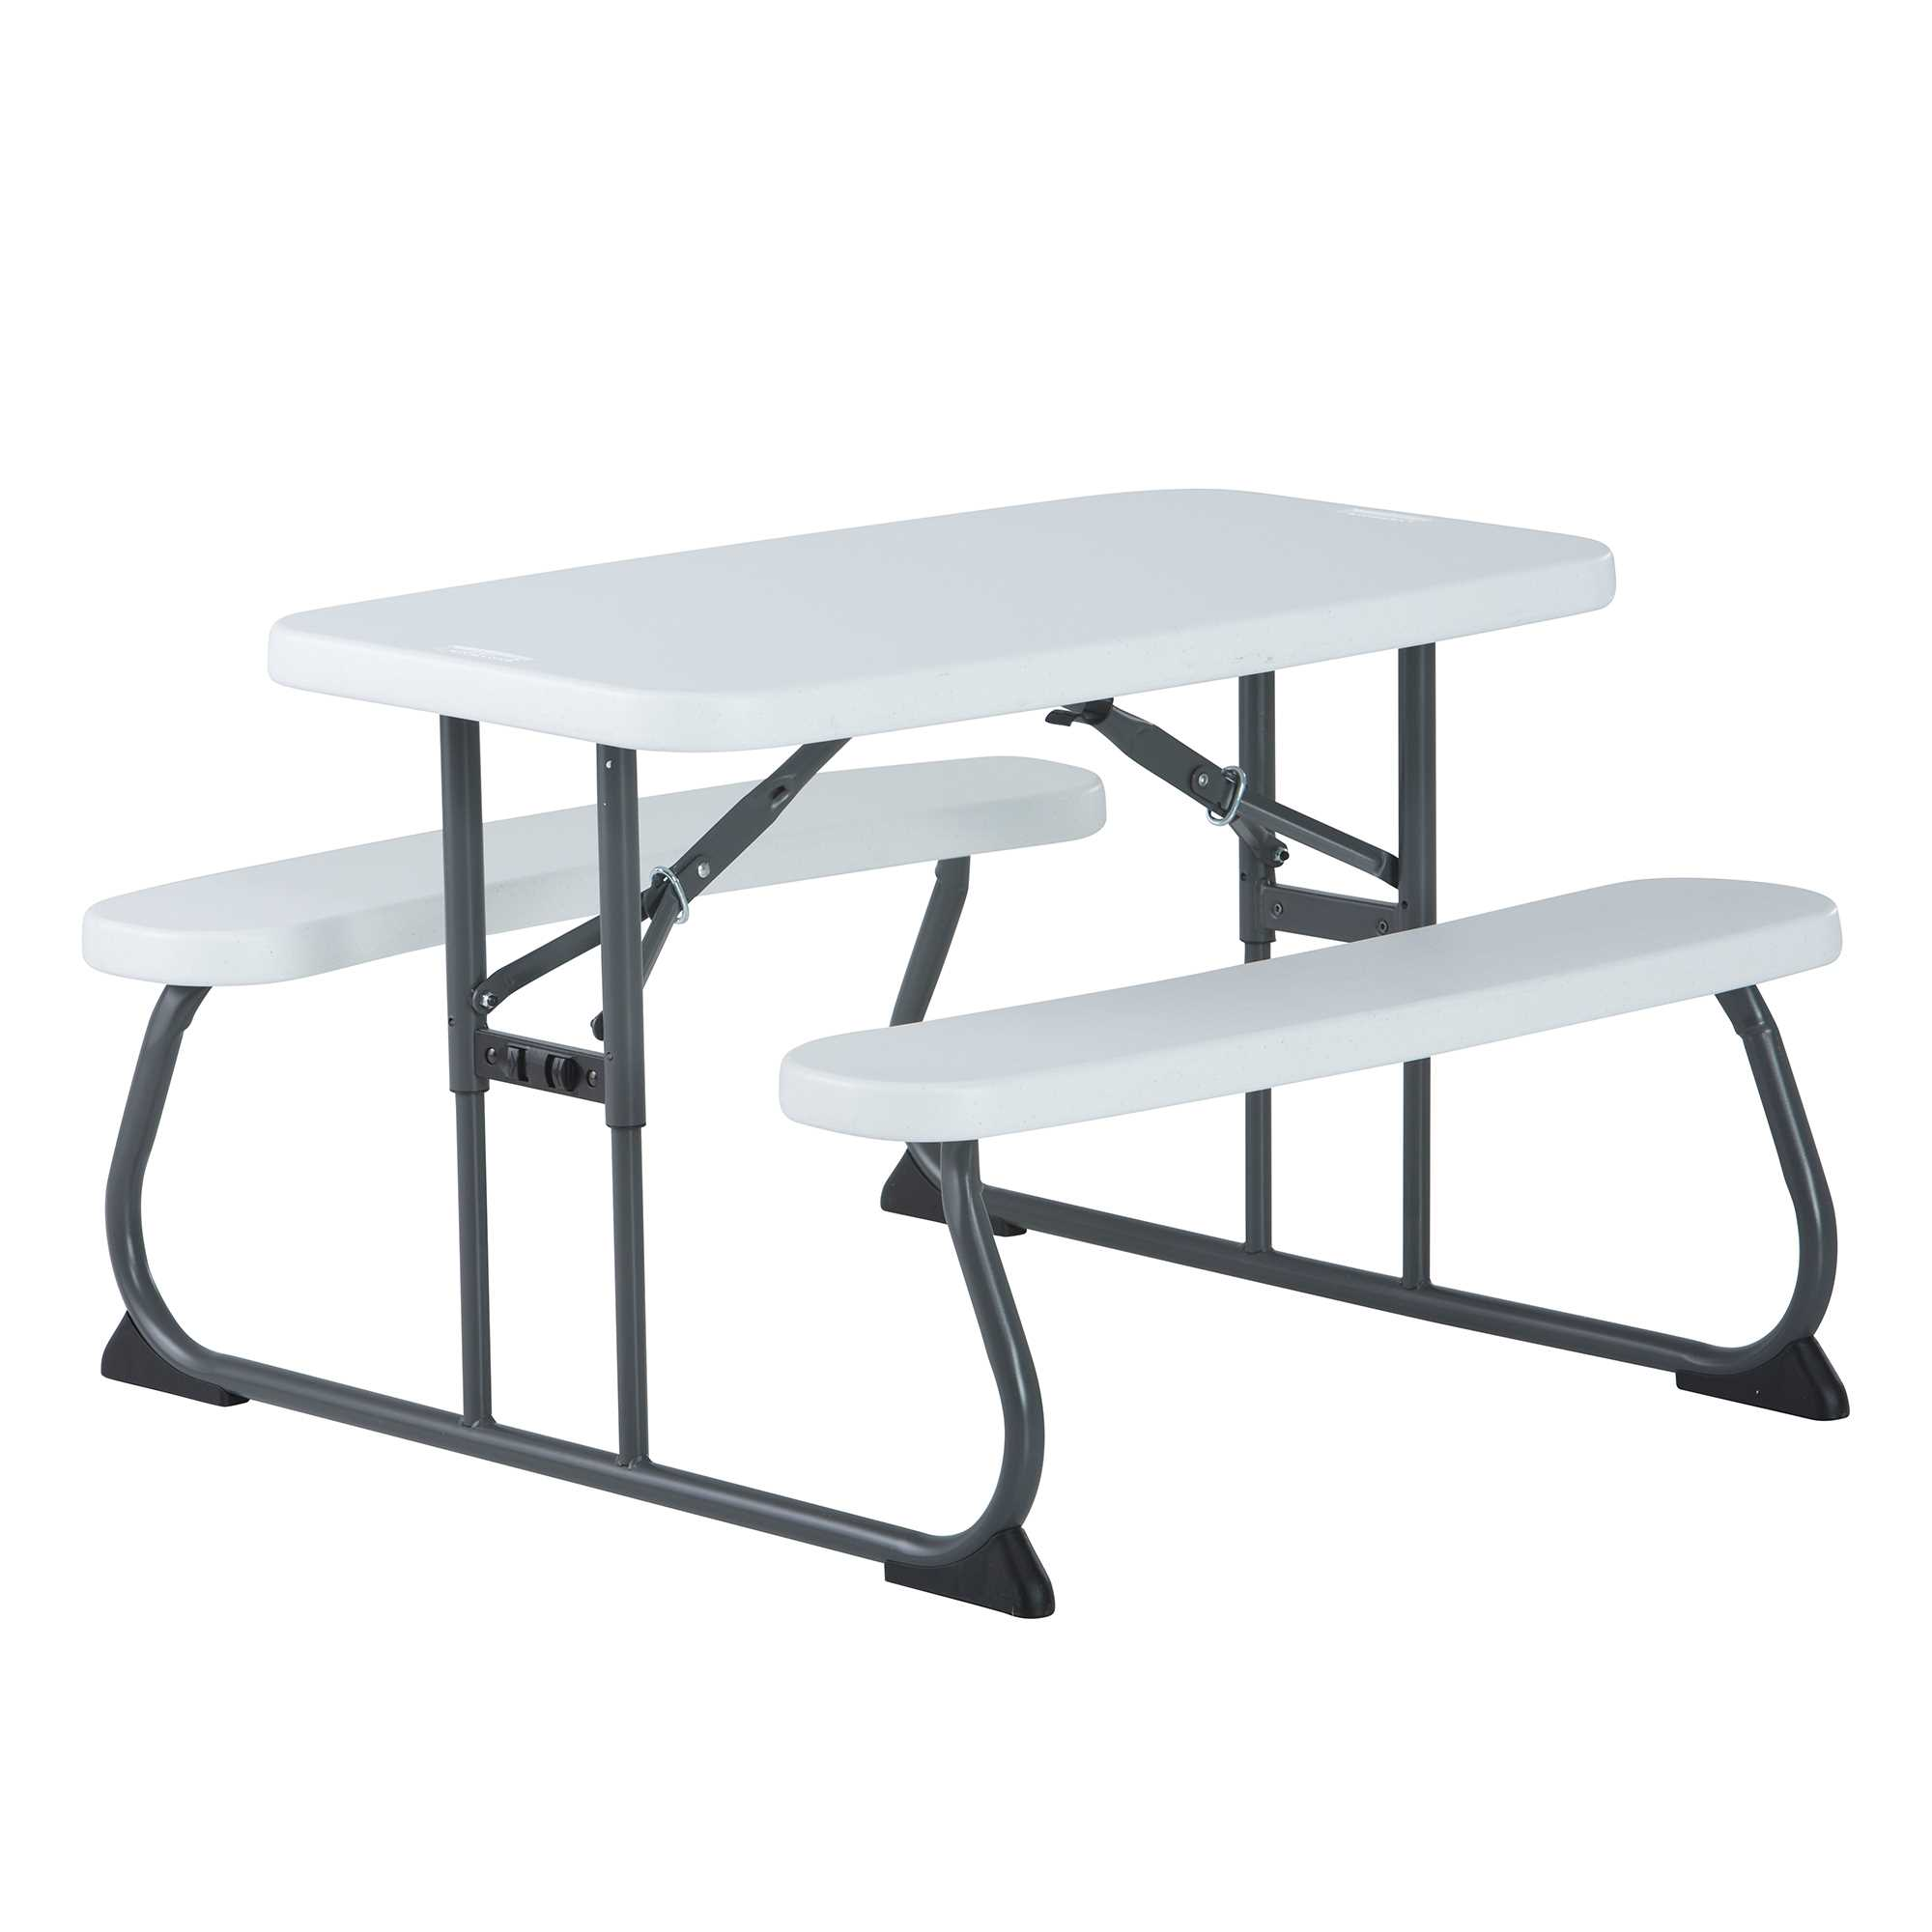 Lifetime Childrens Picnic Table, 60239 by Lifetime Products